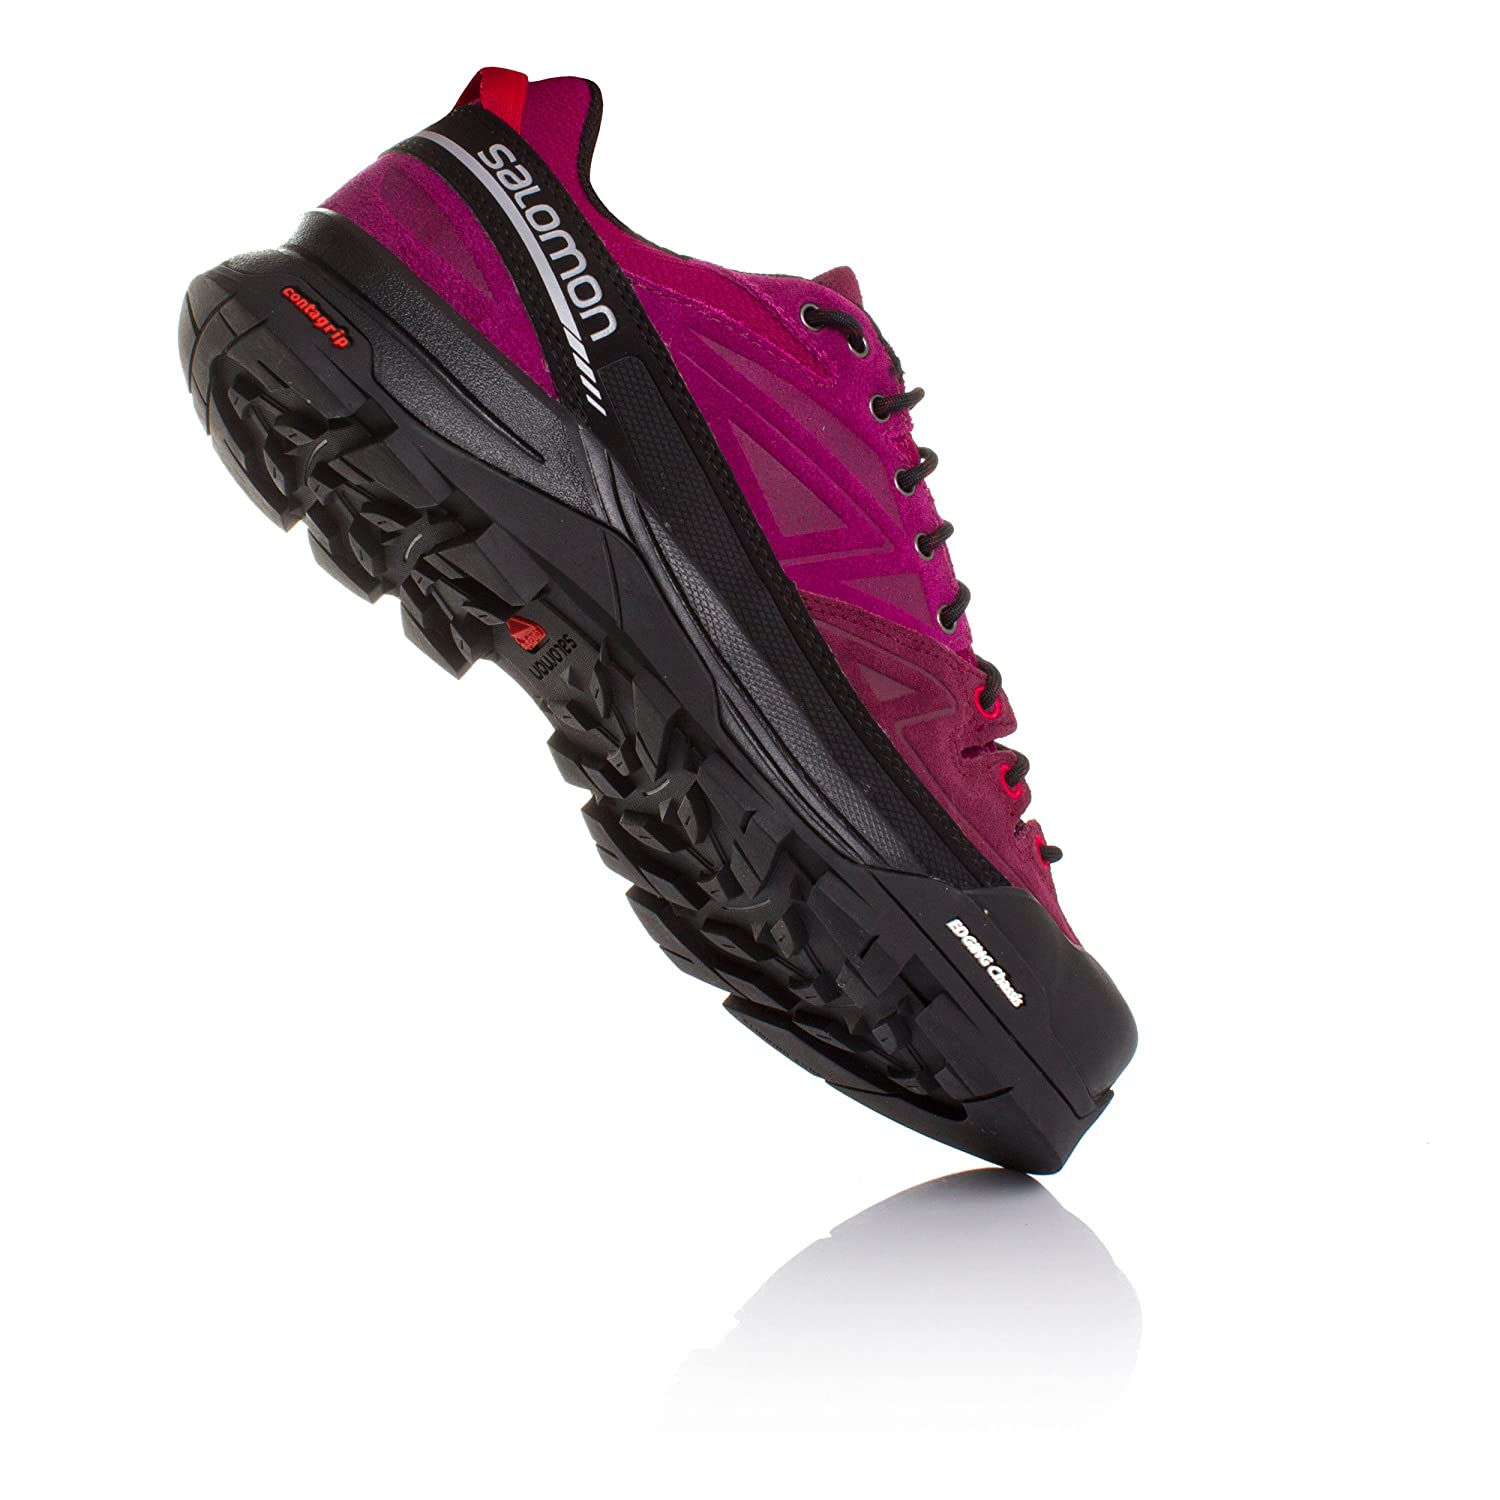 Salomon Women's X Alp LTR W Leather Hiking Sneaker B00ZLN5KGA 7 B(M) US|Mystic Purple, Bordeaux, Lotus Pink